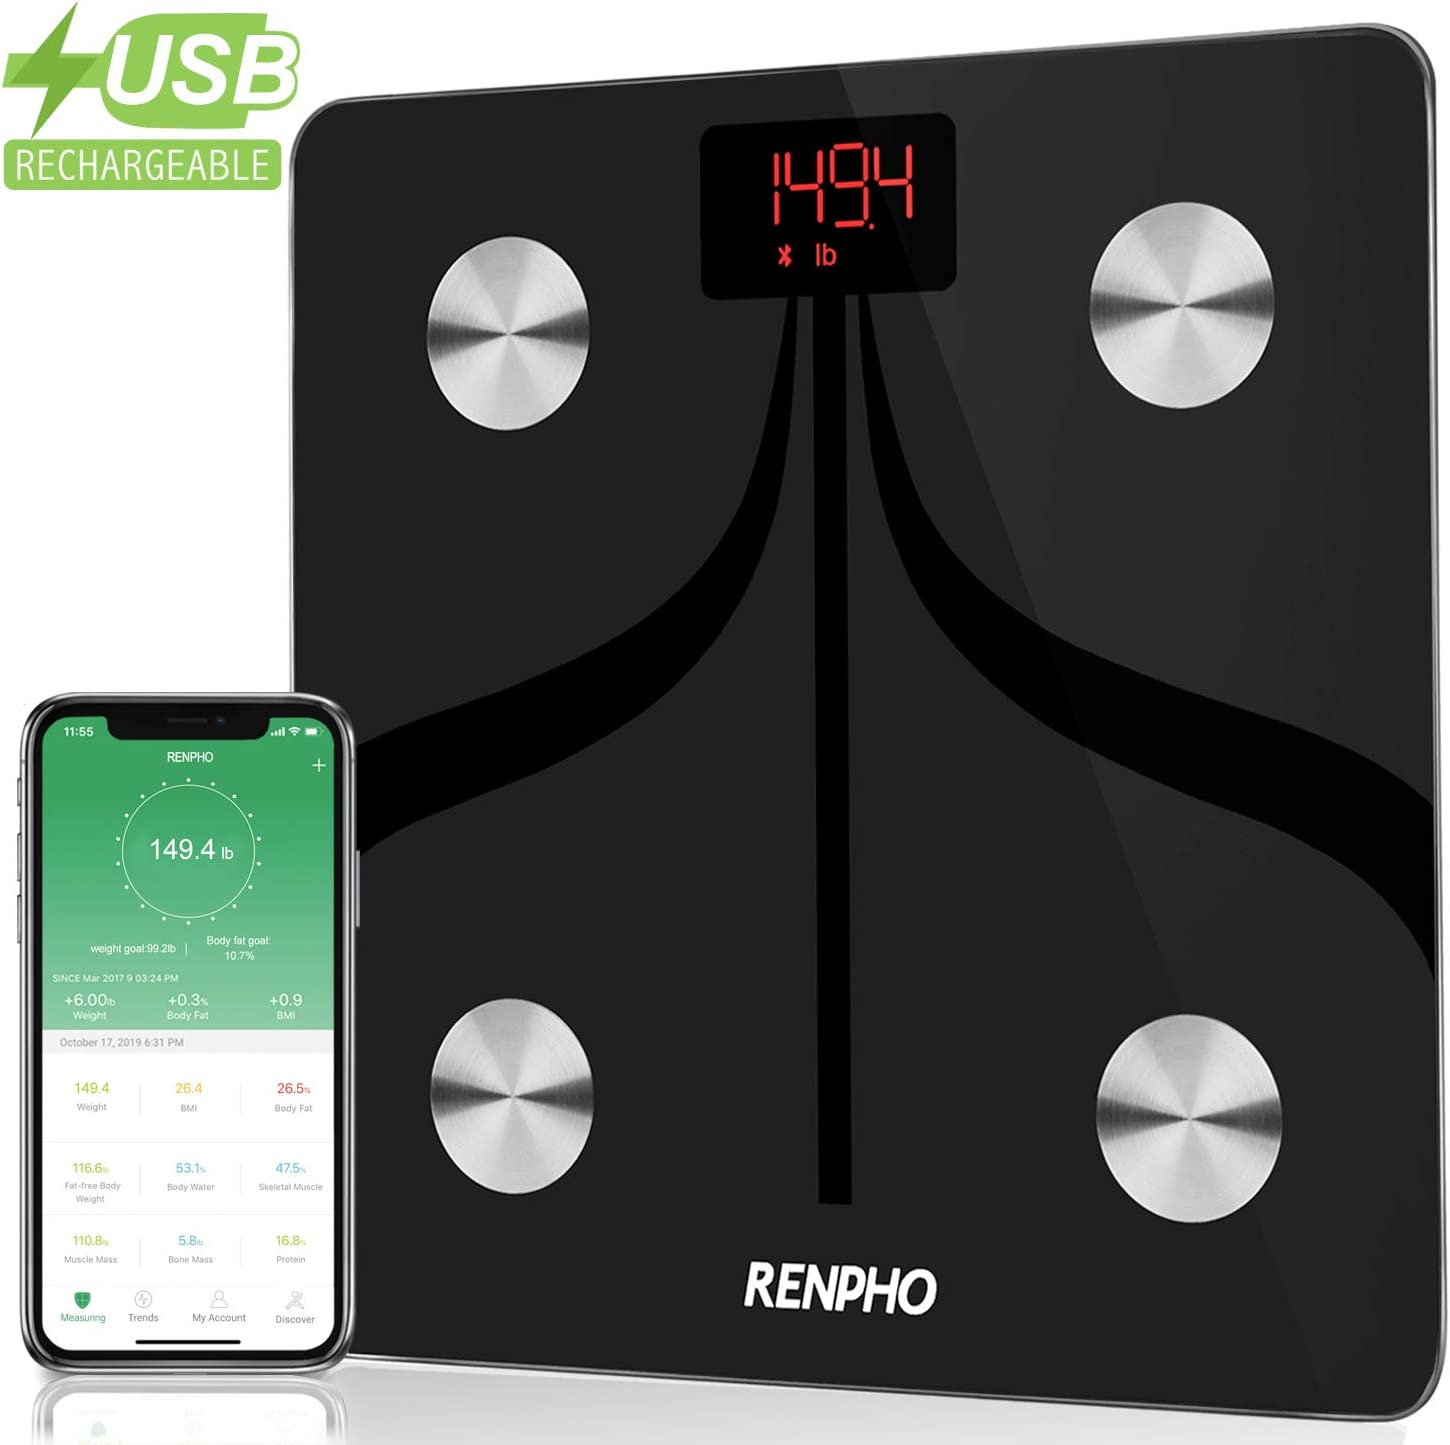 RENPHO USB Chargeable Bluetooth Body Fat Scale Smart Digital Bathroom Scale with Smartphone App, Body Composition Monitor for Body Fat, BMI, Bone Mass, Weight, 396 lbs Black